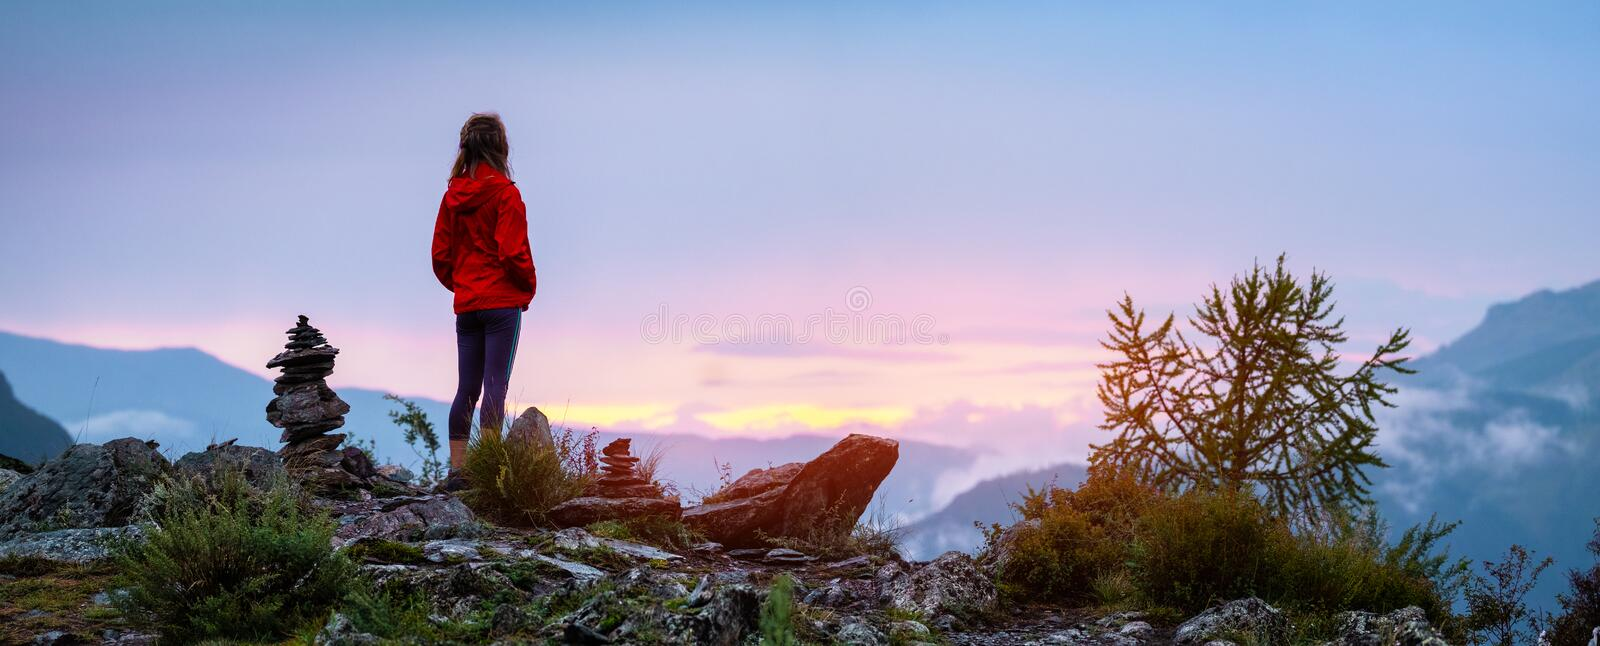 Young woman near cairns. Panorama with lady hiker standing on top of the mountain among stacked stones and enjoying sunset over the valley. Altai, Russia stock image